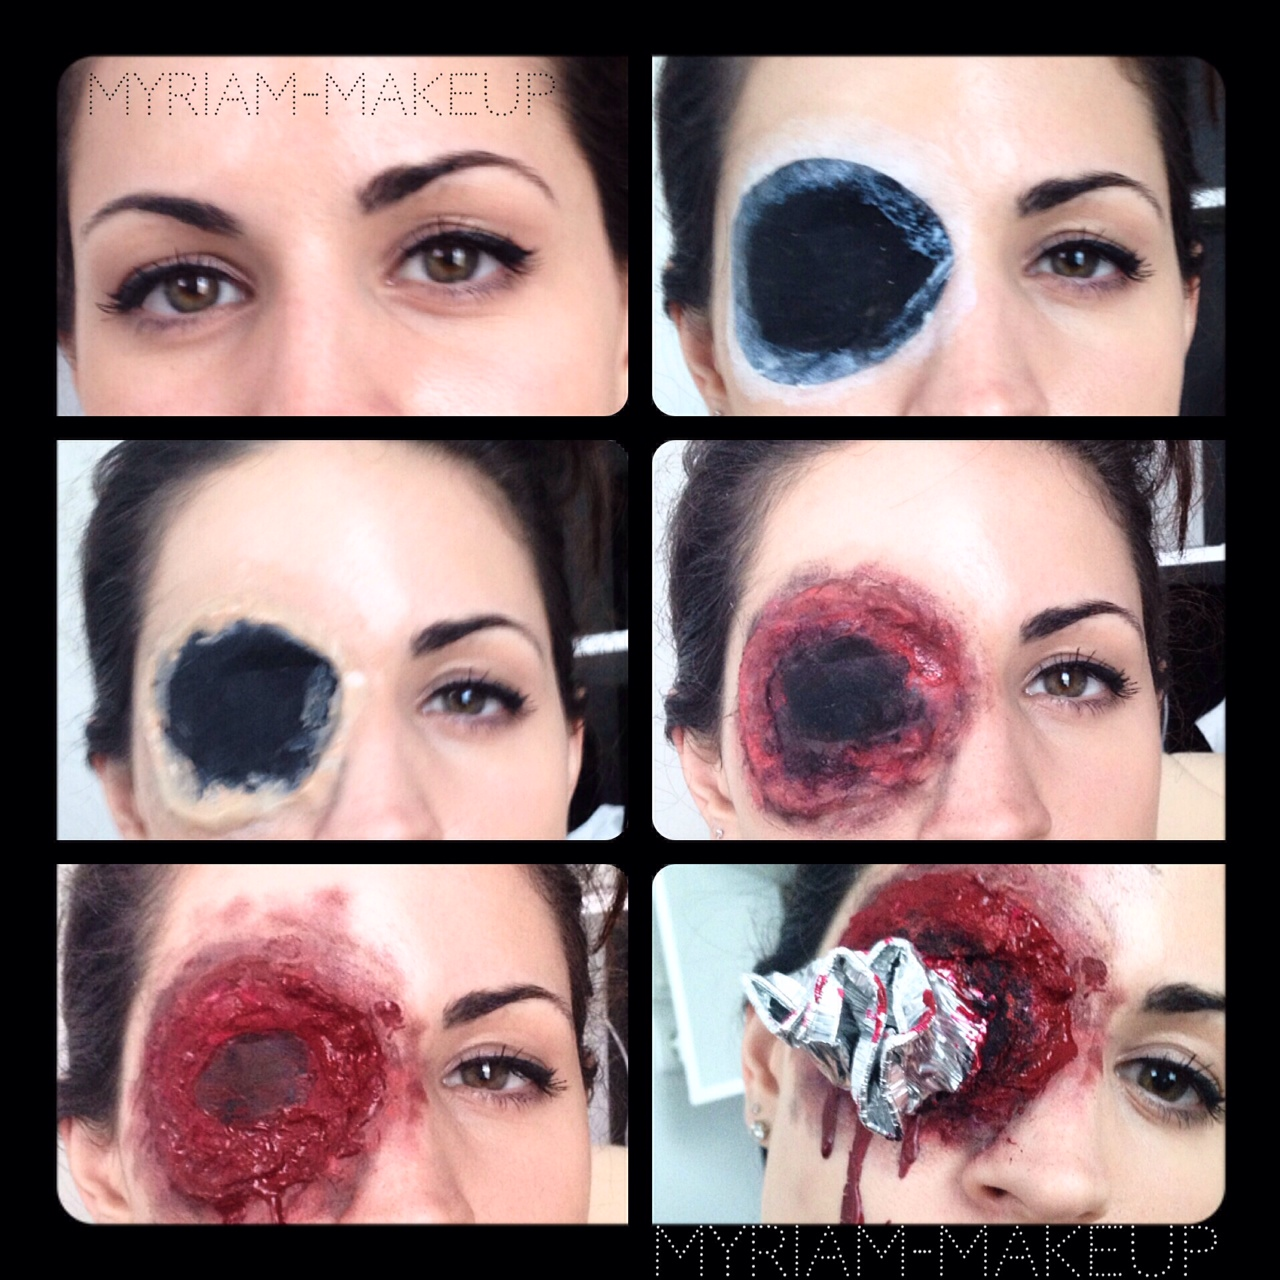 Maquillage halloween oeil transperc myriam poulet - Maquillage halloween latex ...